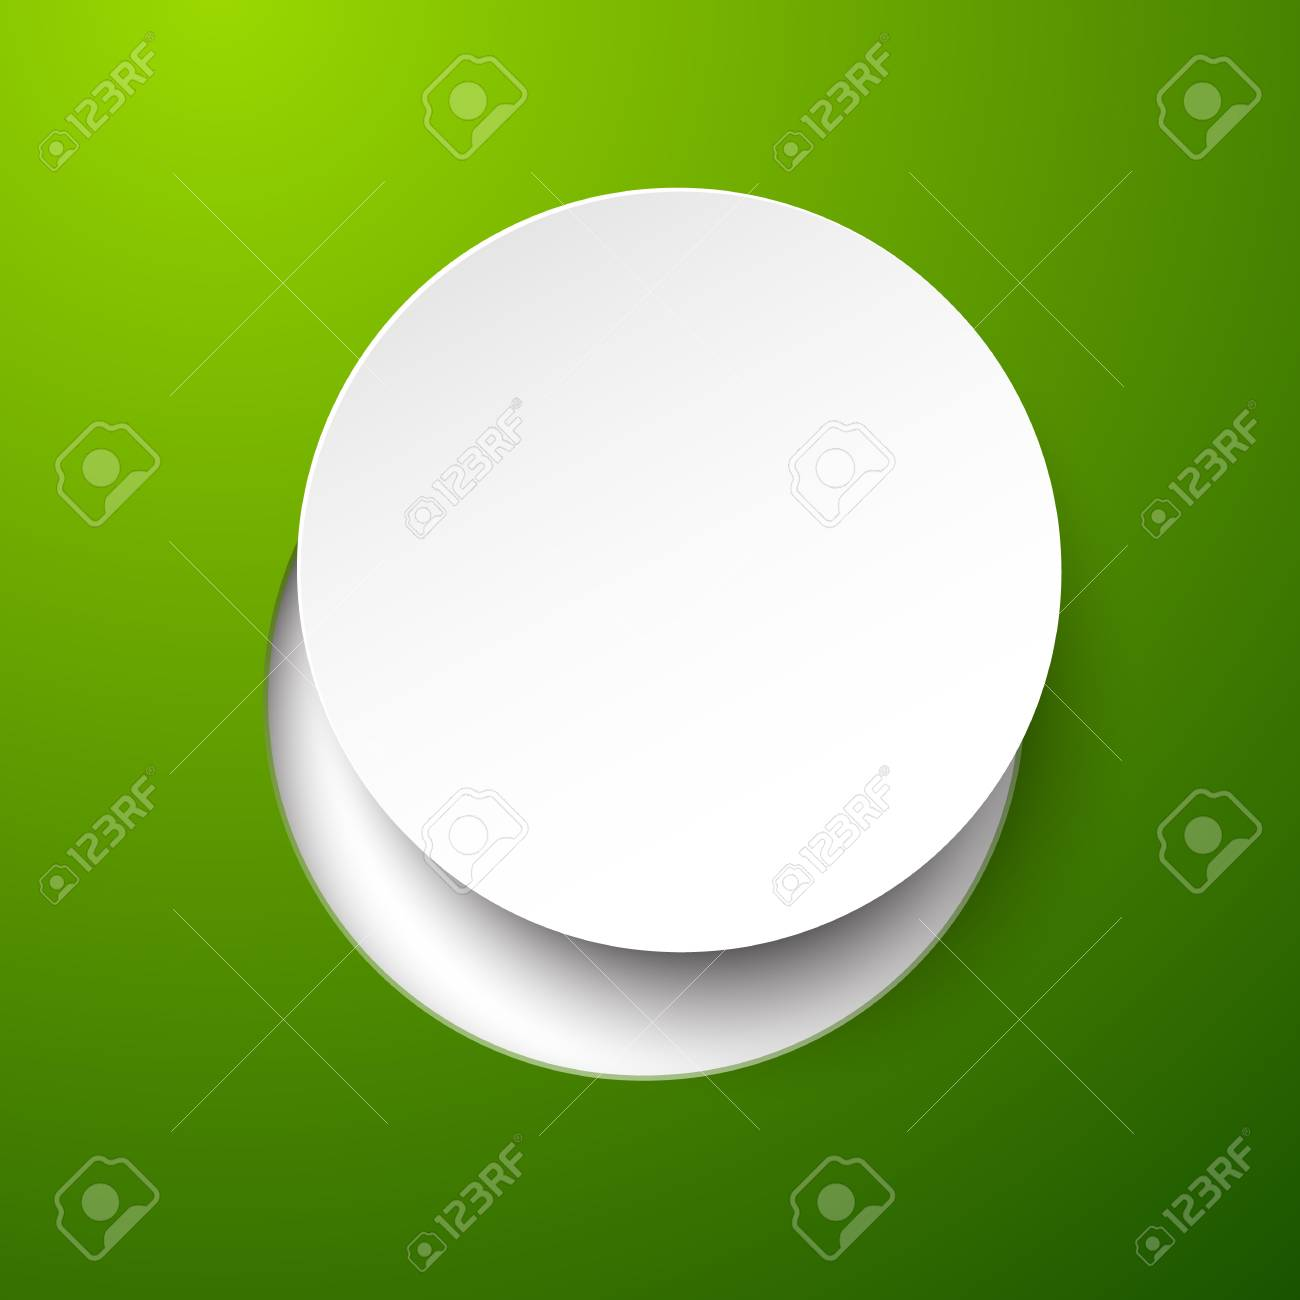 Vector abstract illustration composed of white paper round note over green background  Eps10 Stock Vector - 17191341